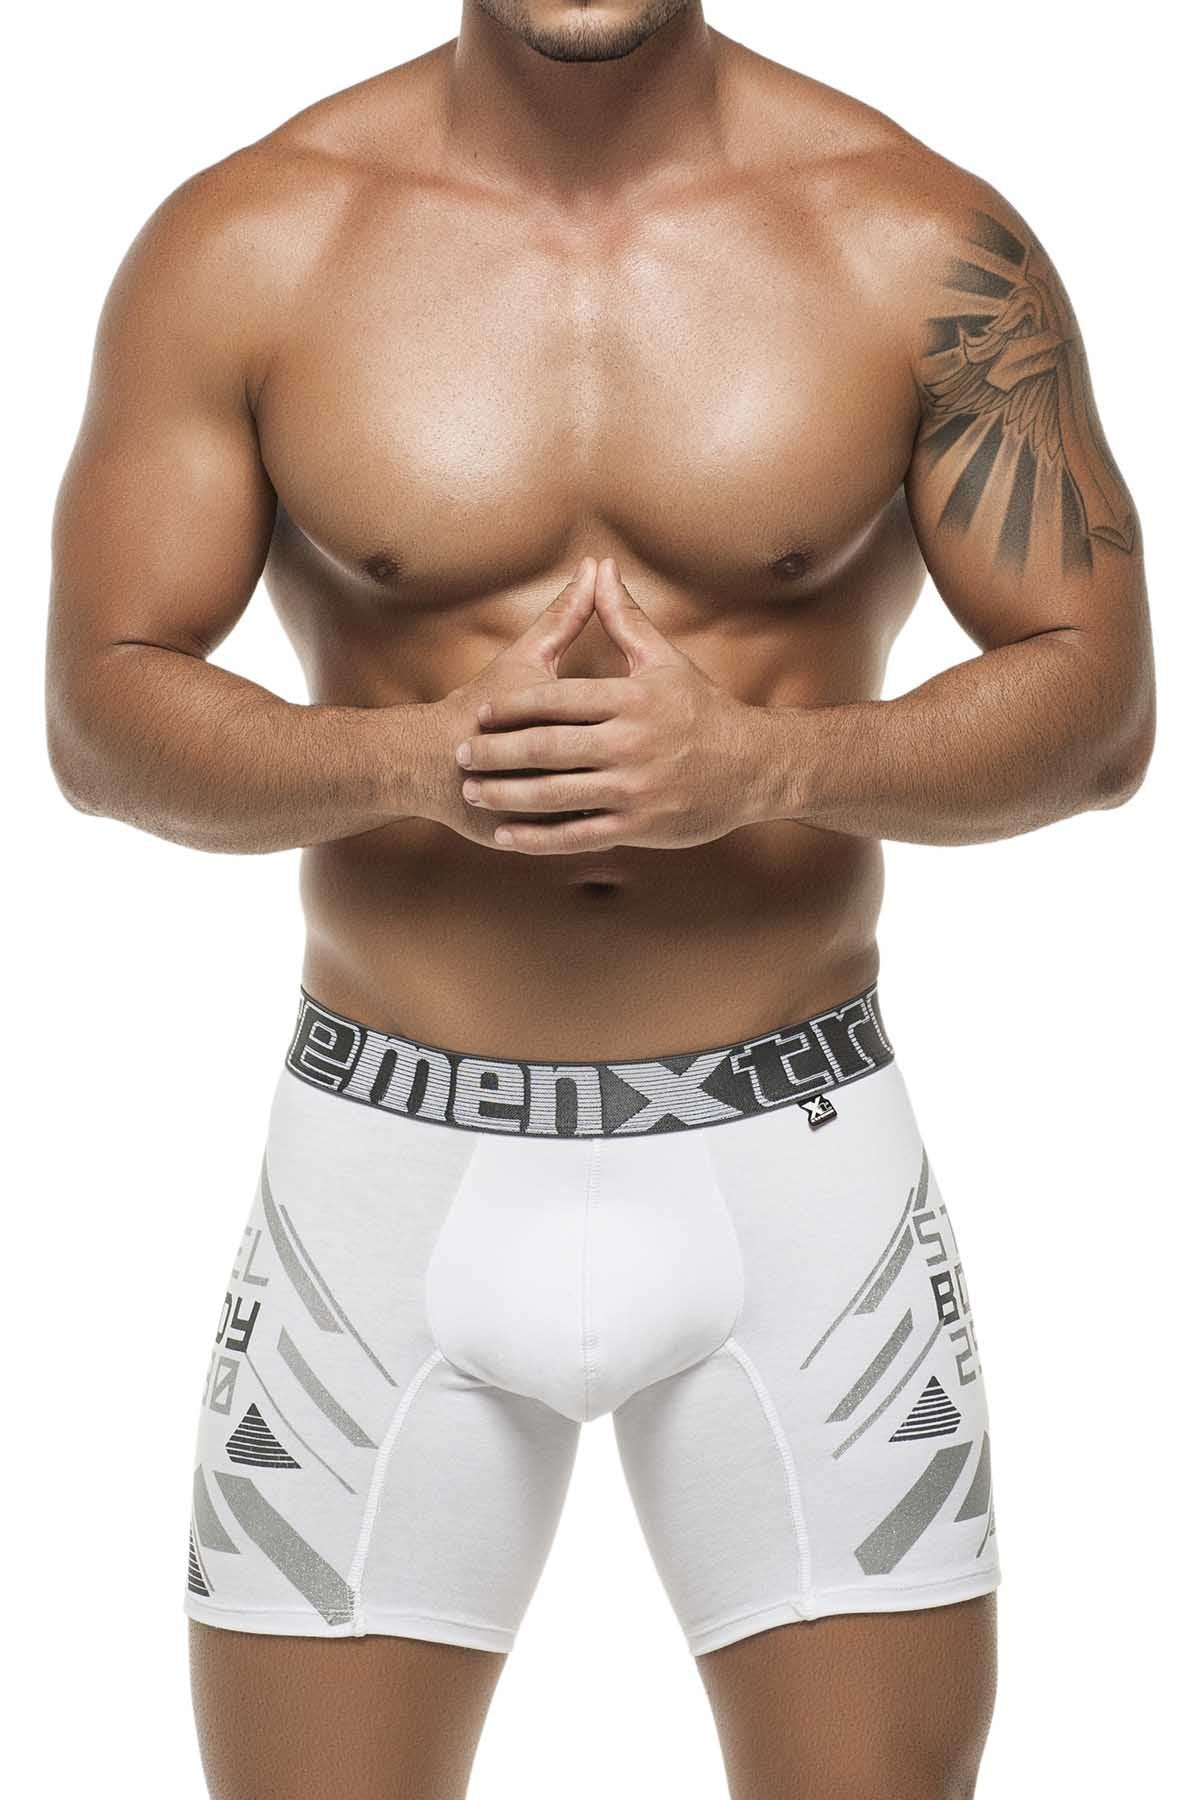 Xtremen White Steel Body Boxer Brief